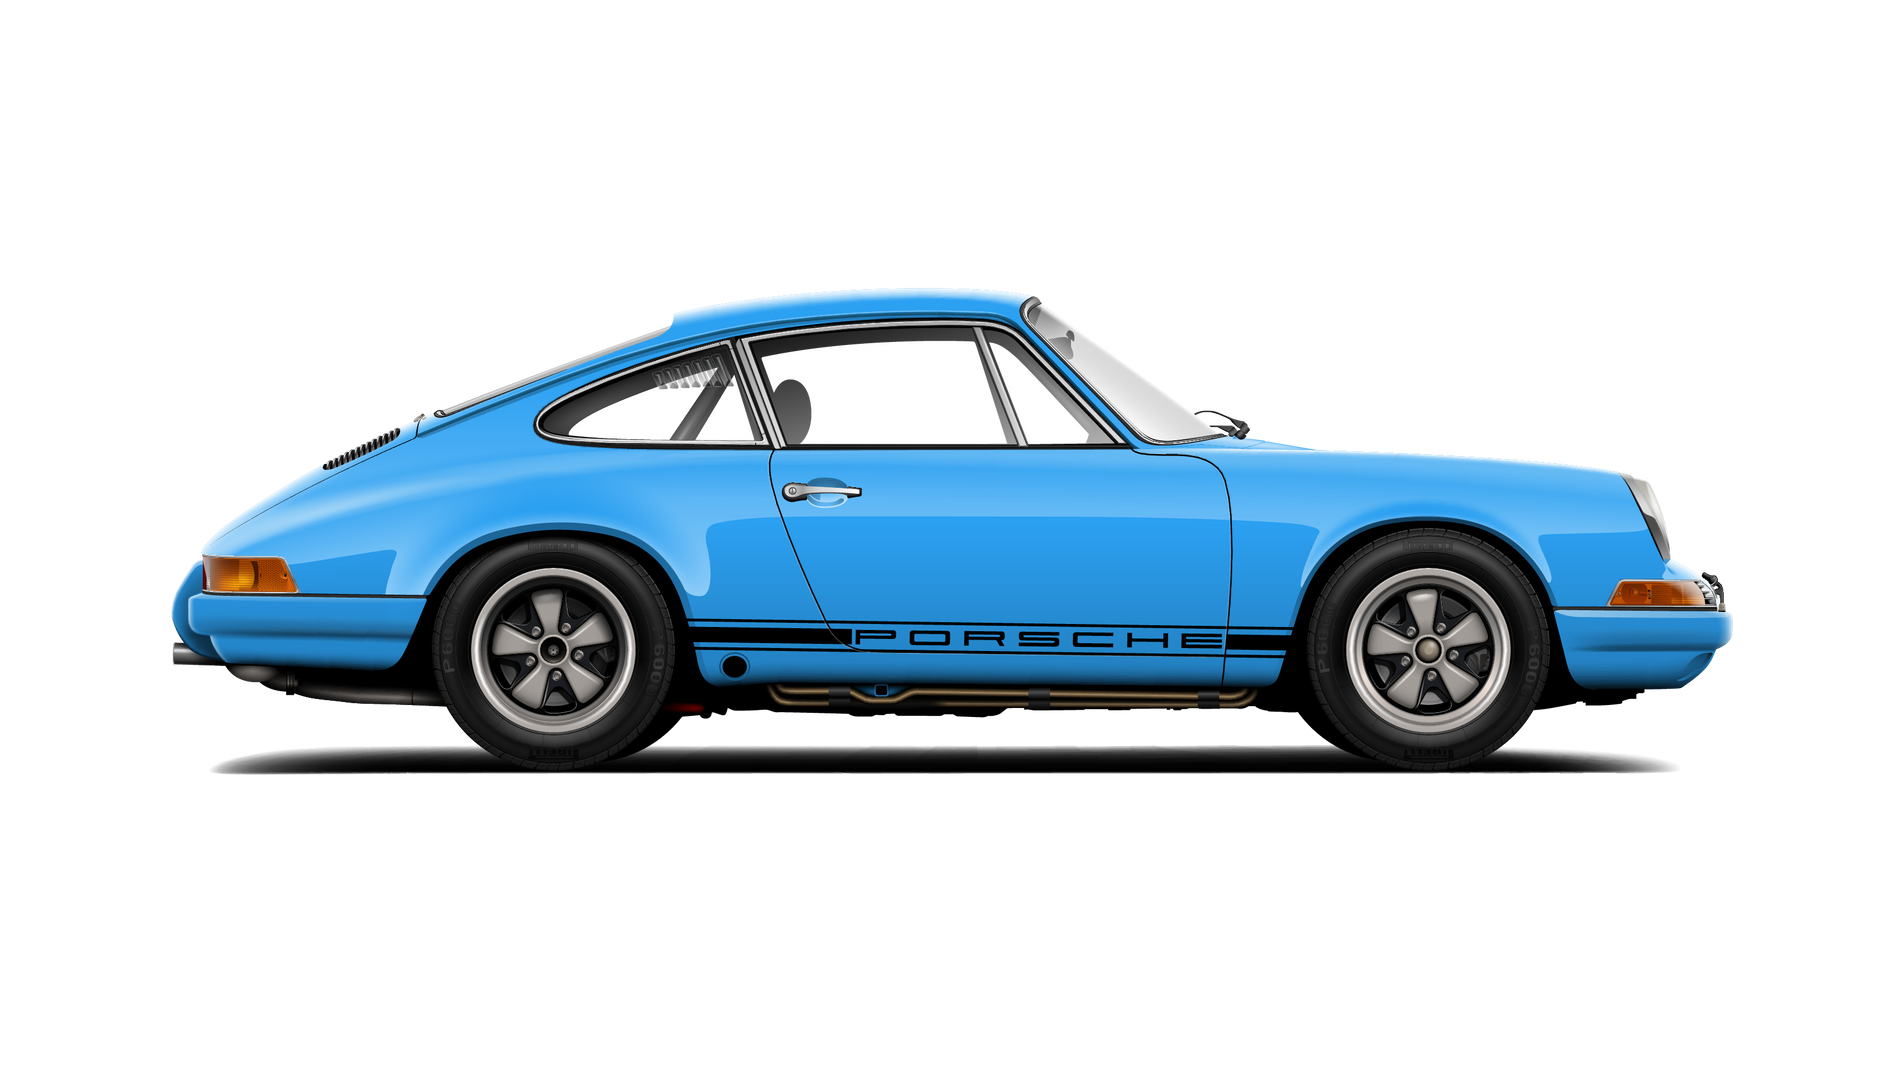 showcase_jdocherty911-01.png